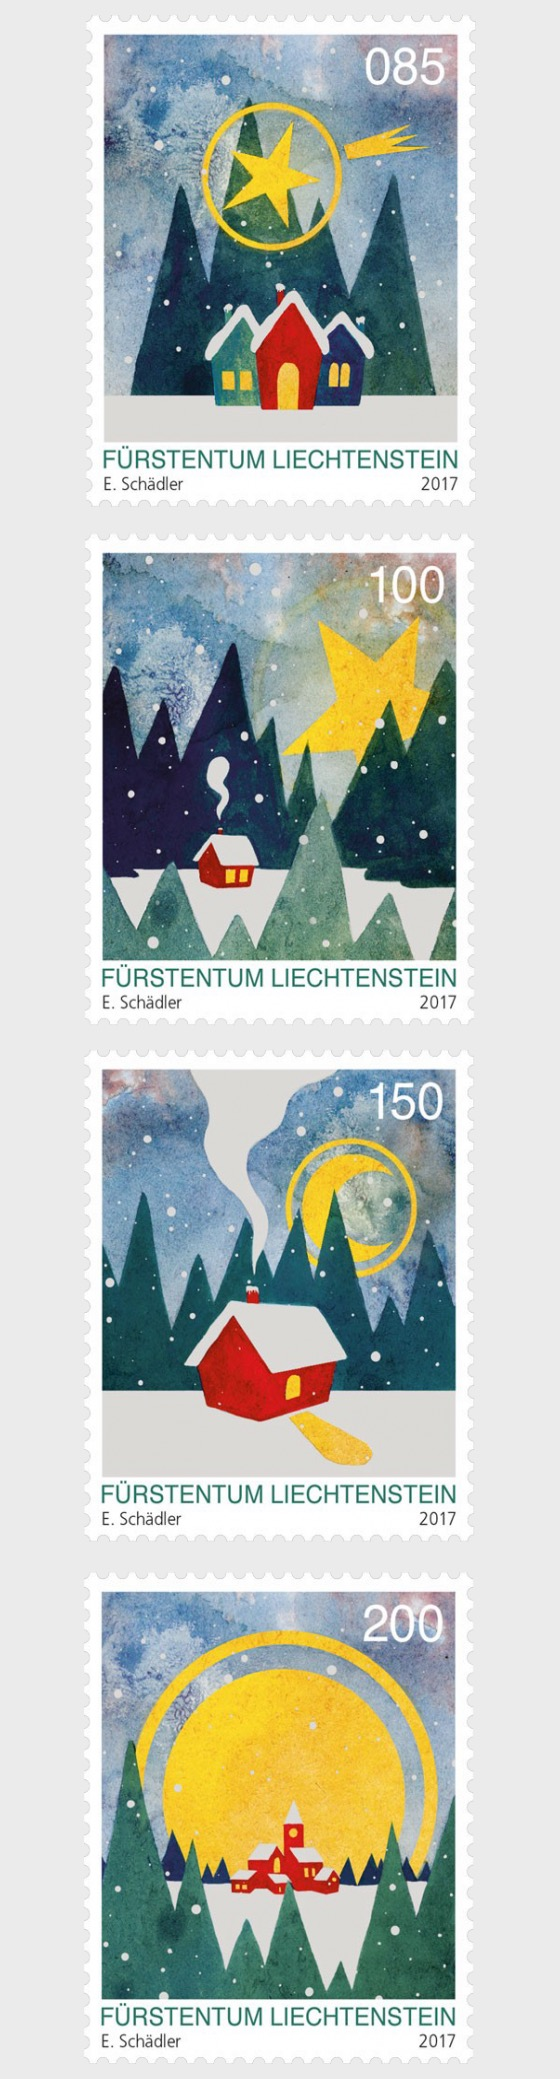 Christmas 2017 - (Set Mint) - Set